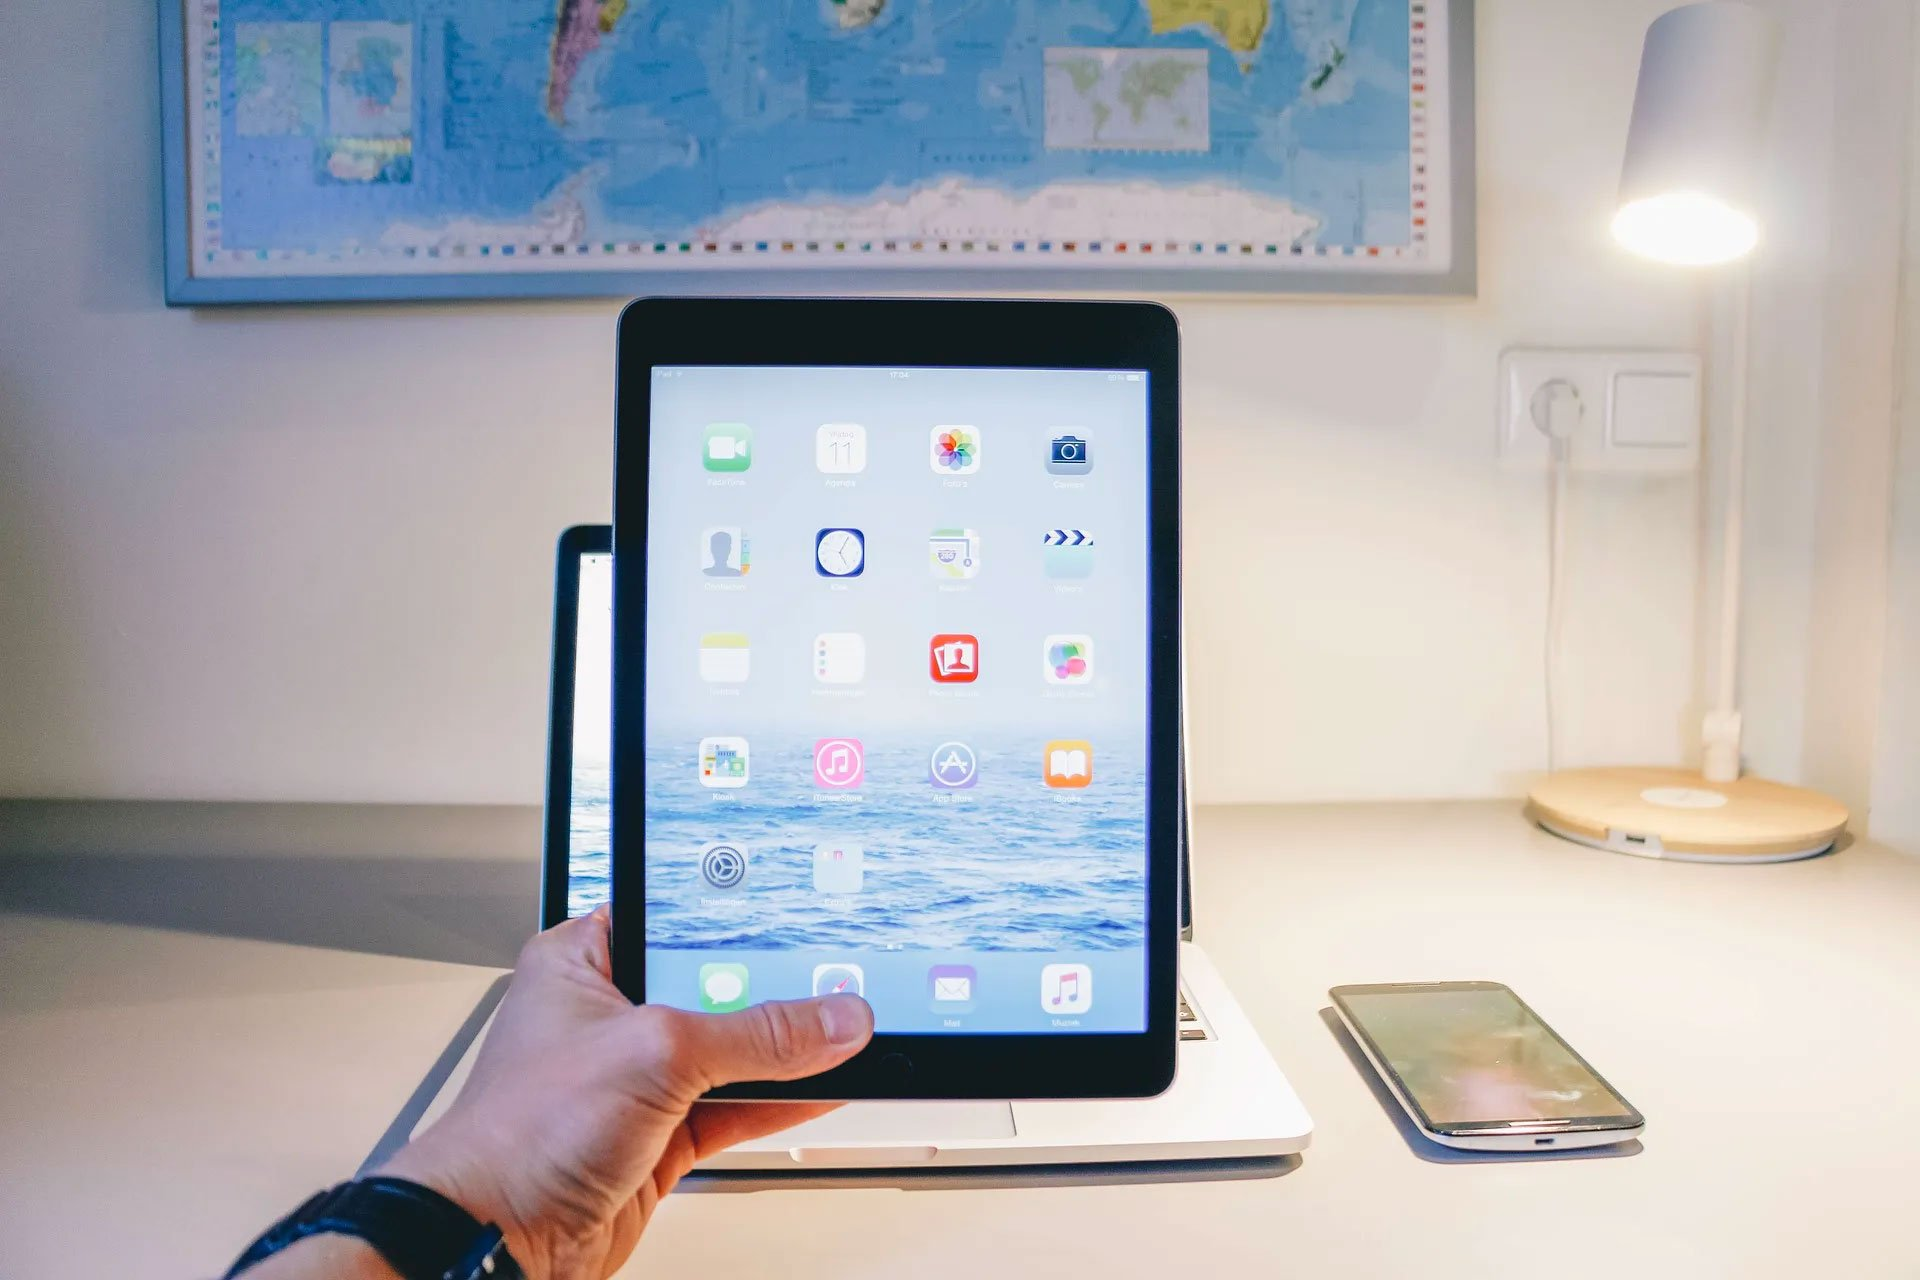 How to Make Your Touch Screen Monitor More Comfortable